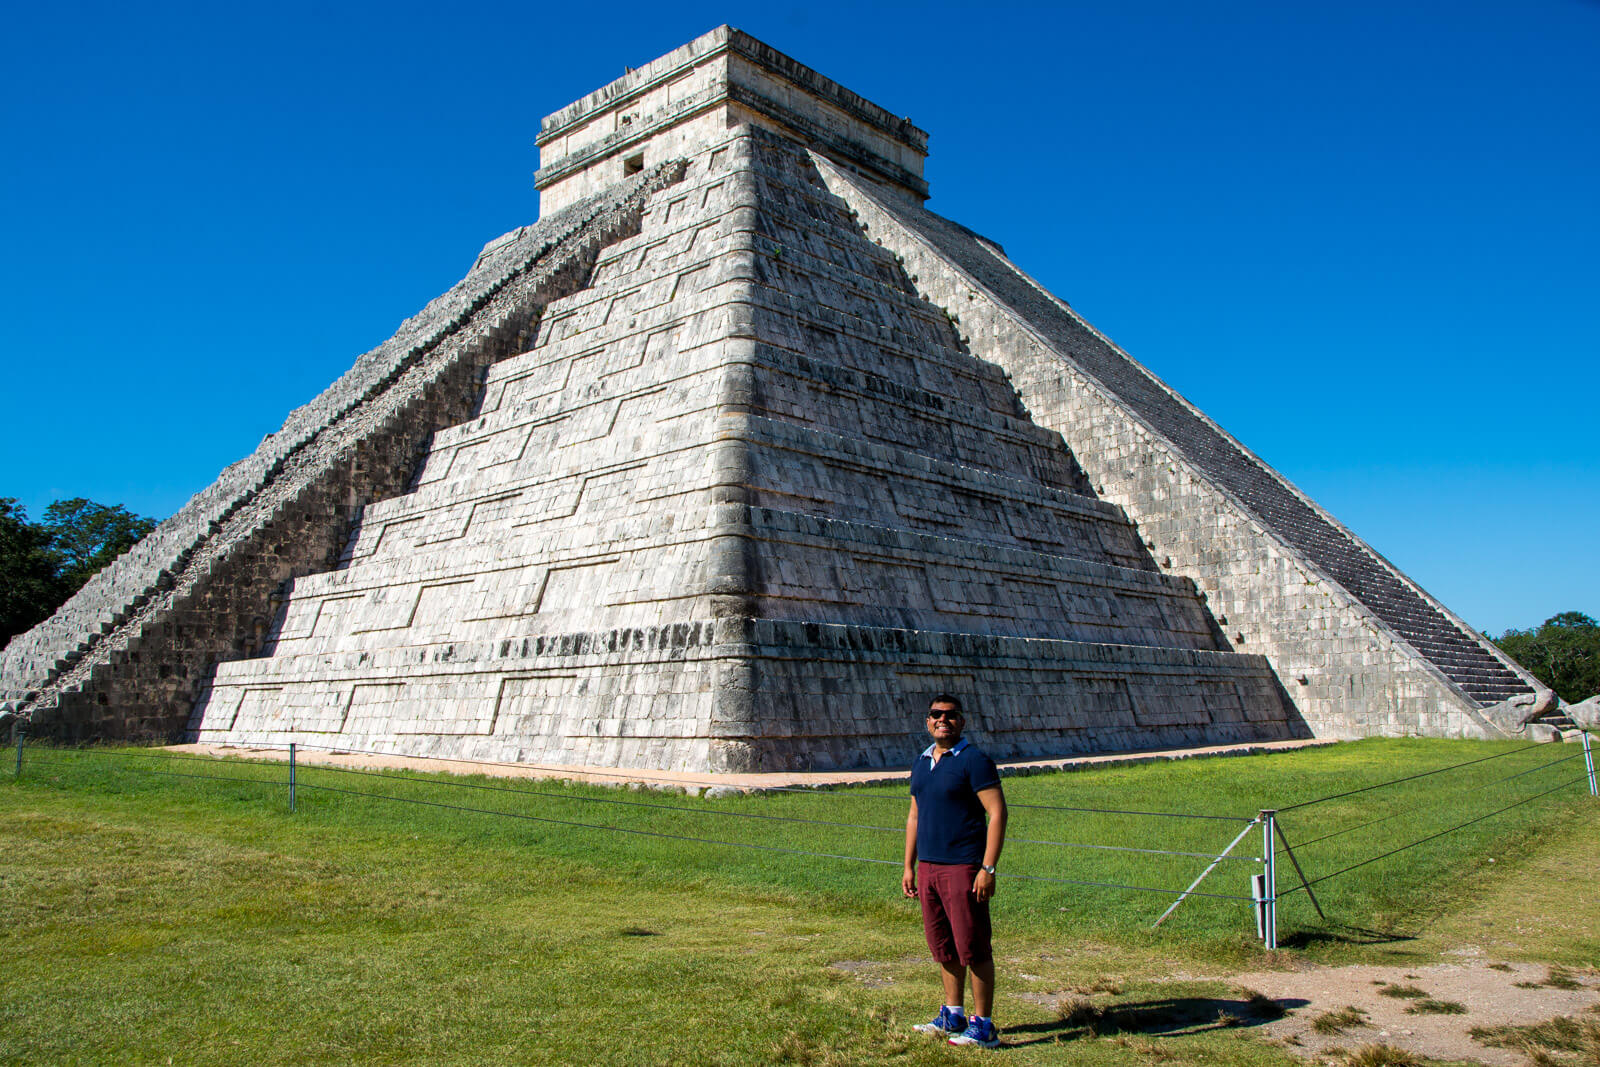 The Man of Wonders at his second home aka Chichen Itza